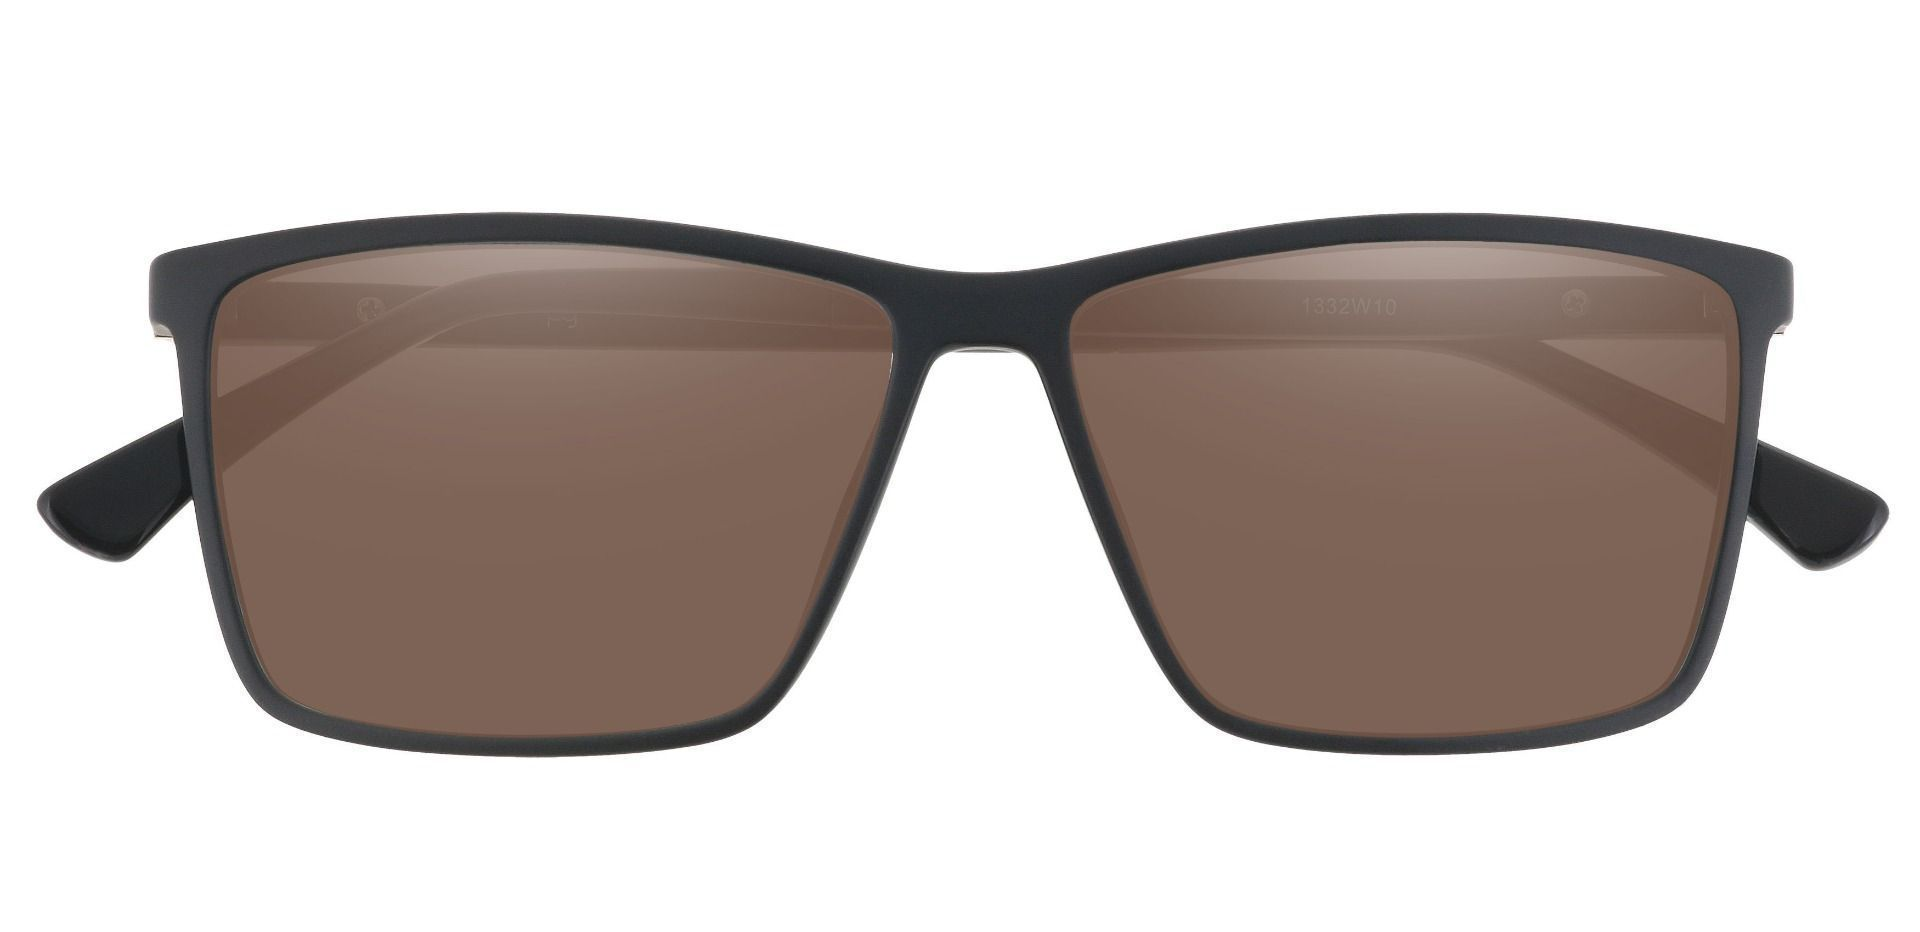 Louie Square Prescription Sunglasses - Black Frame With Brown Lenses